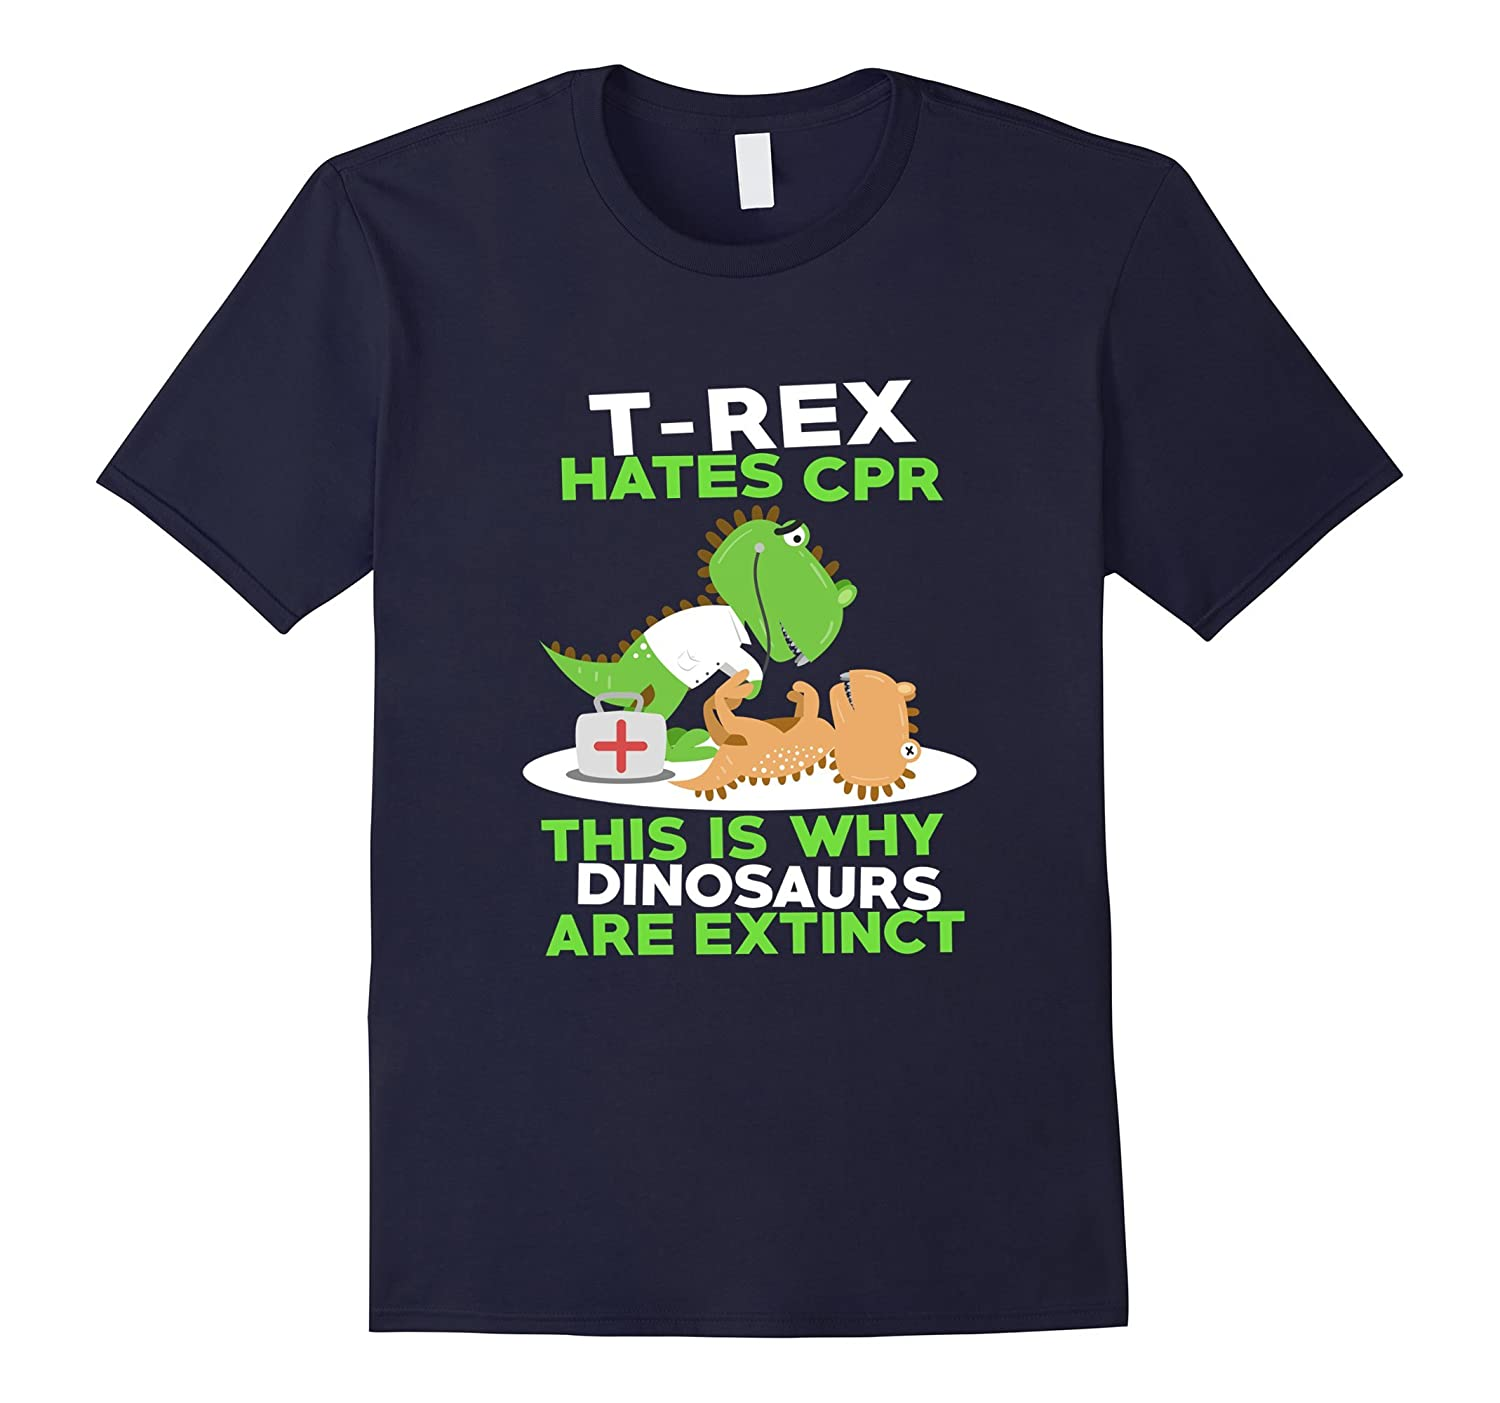 FUNNY T-REX HATES CPR T-SHIRT Cute Dinosaur Meme Saying Gift-CL